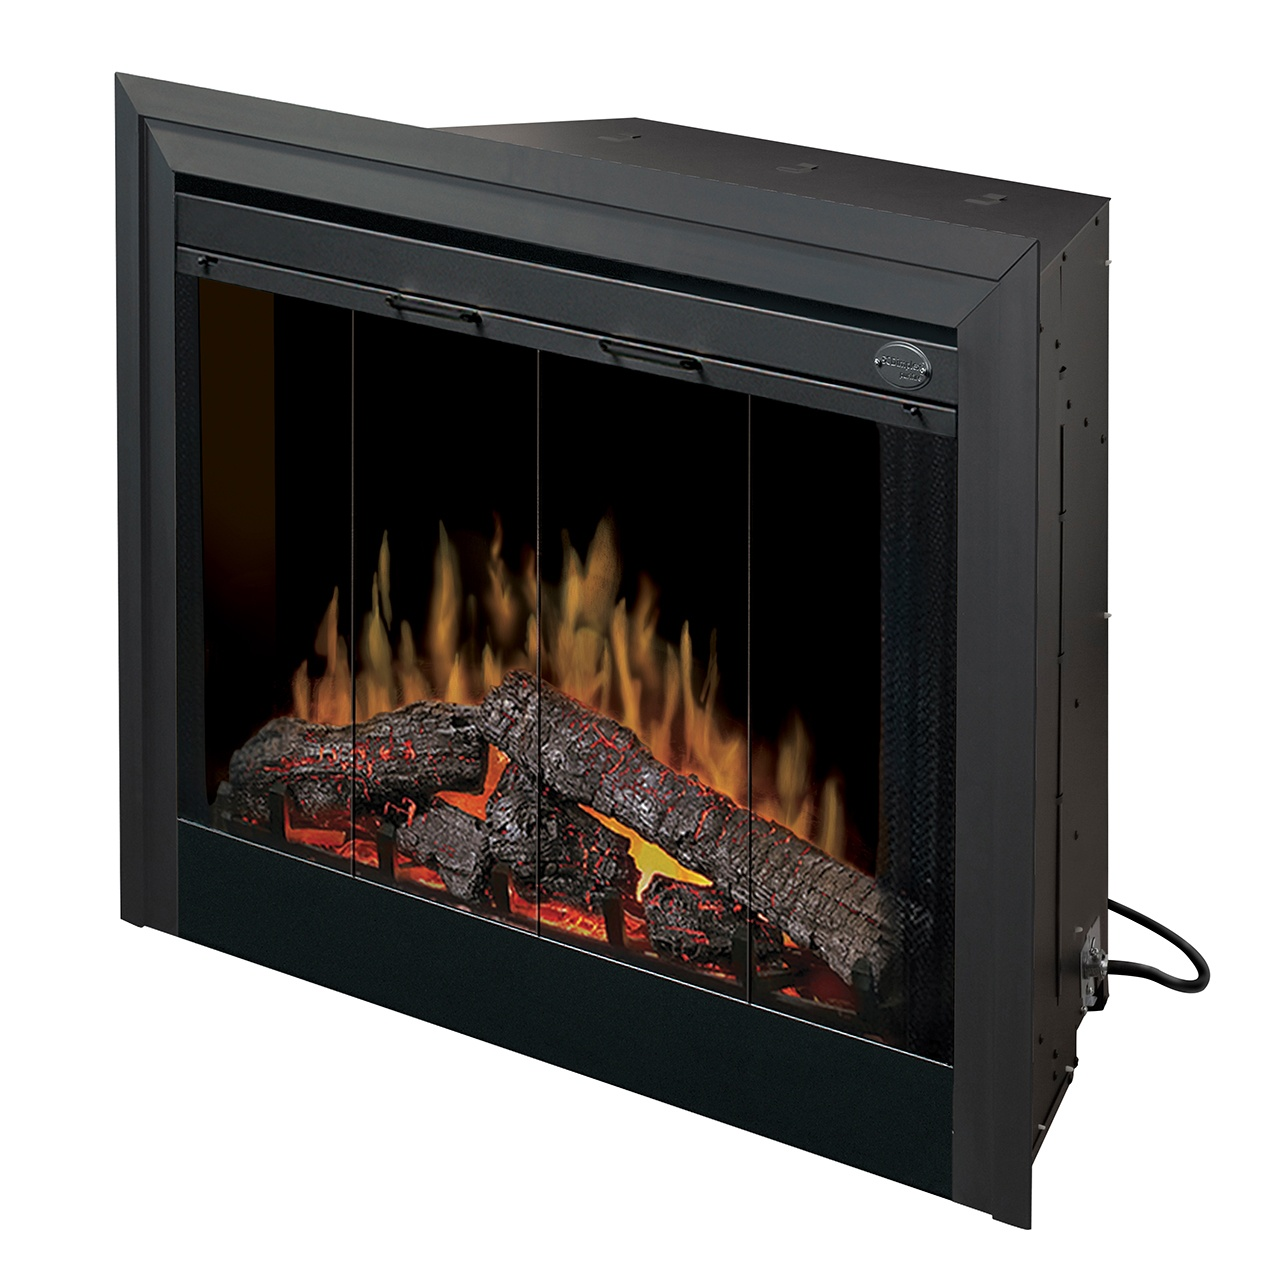 Dimplex 39 Bf39stp Electric Fireplace